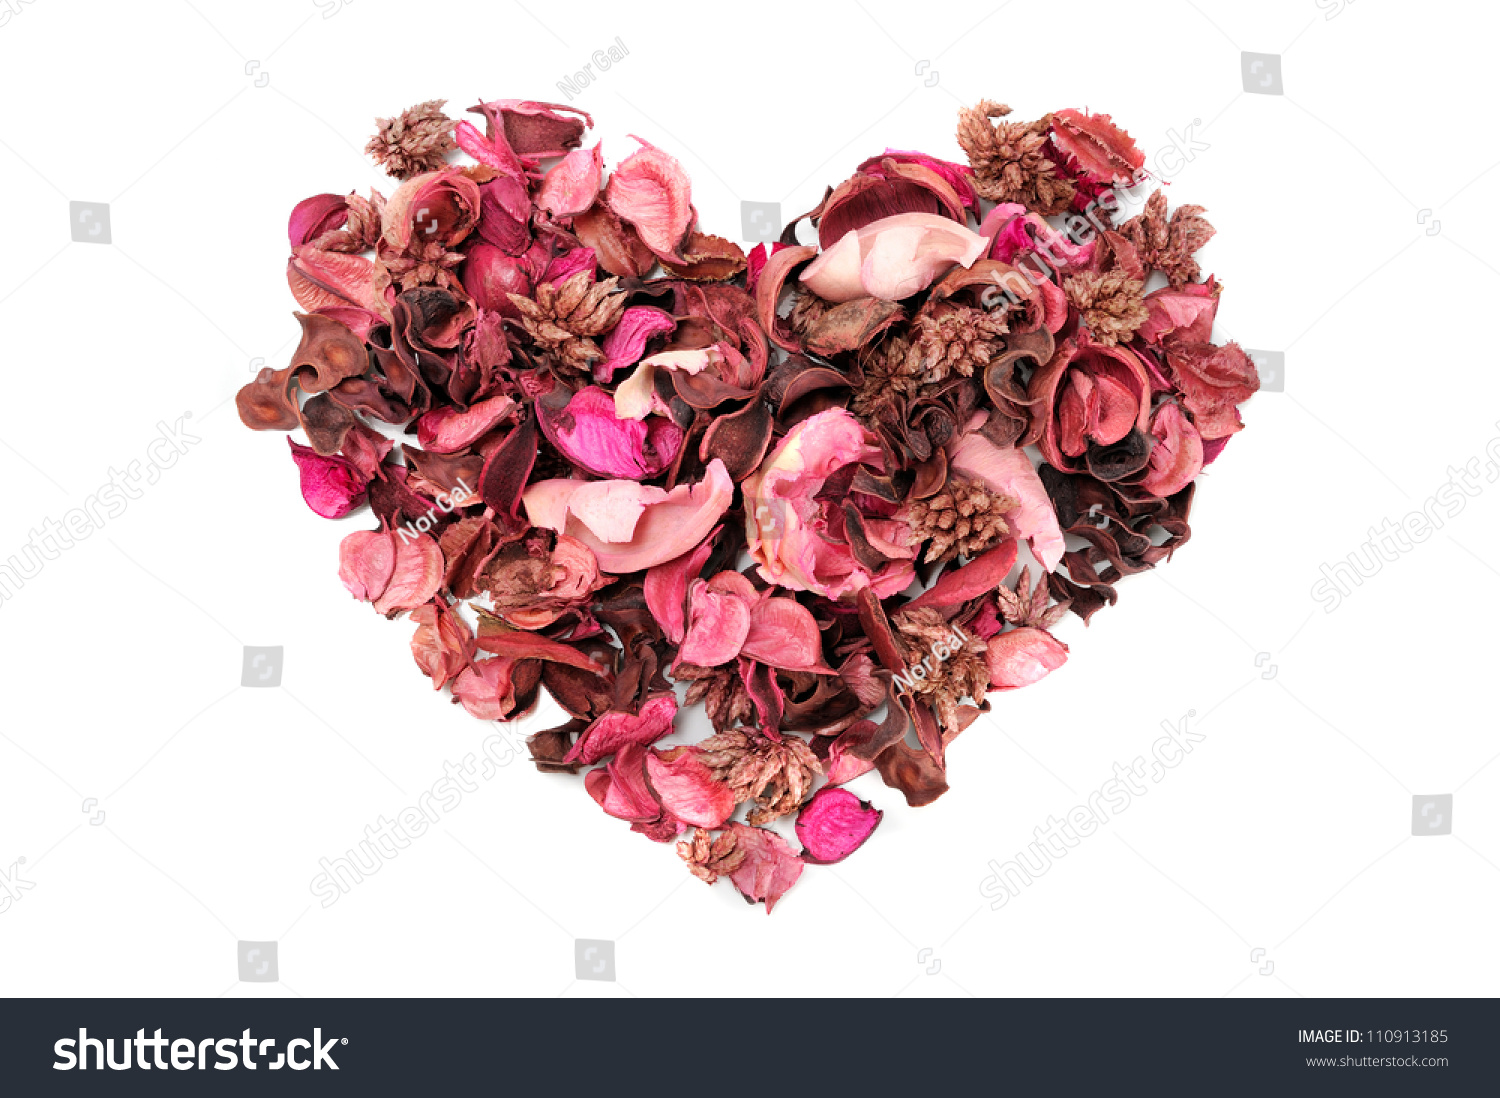 Heart Shaped Dry Aromatic Flowers Isolate Stock Photo 100 Legal